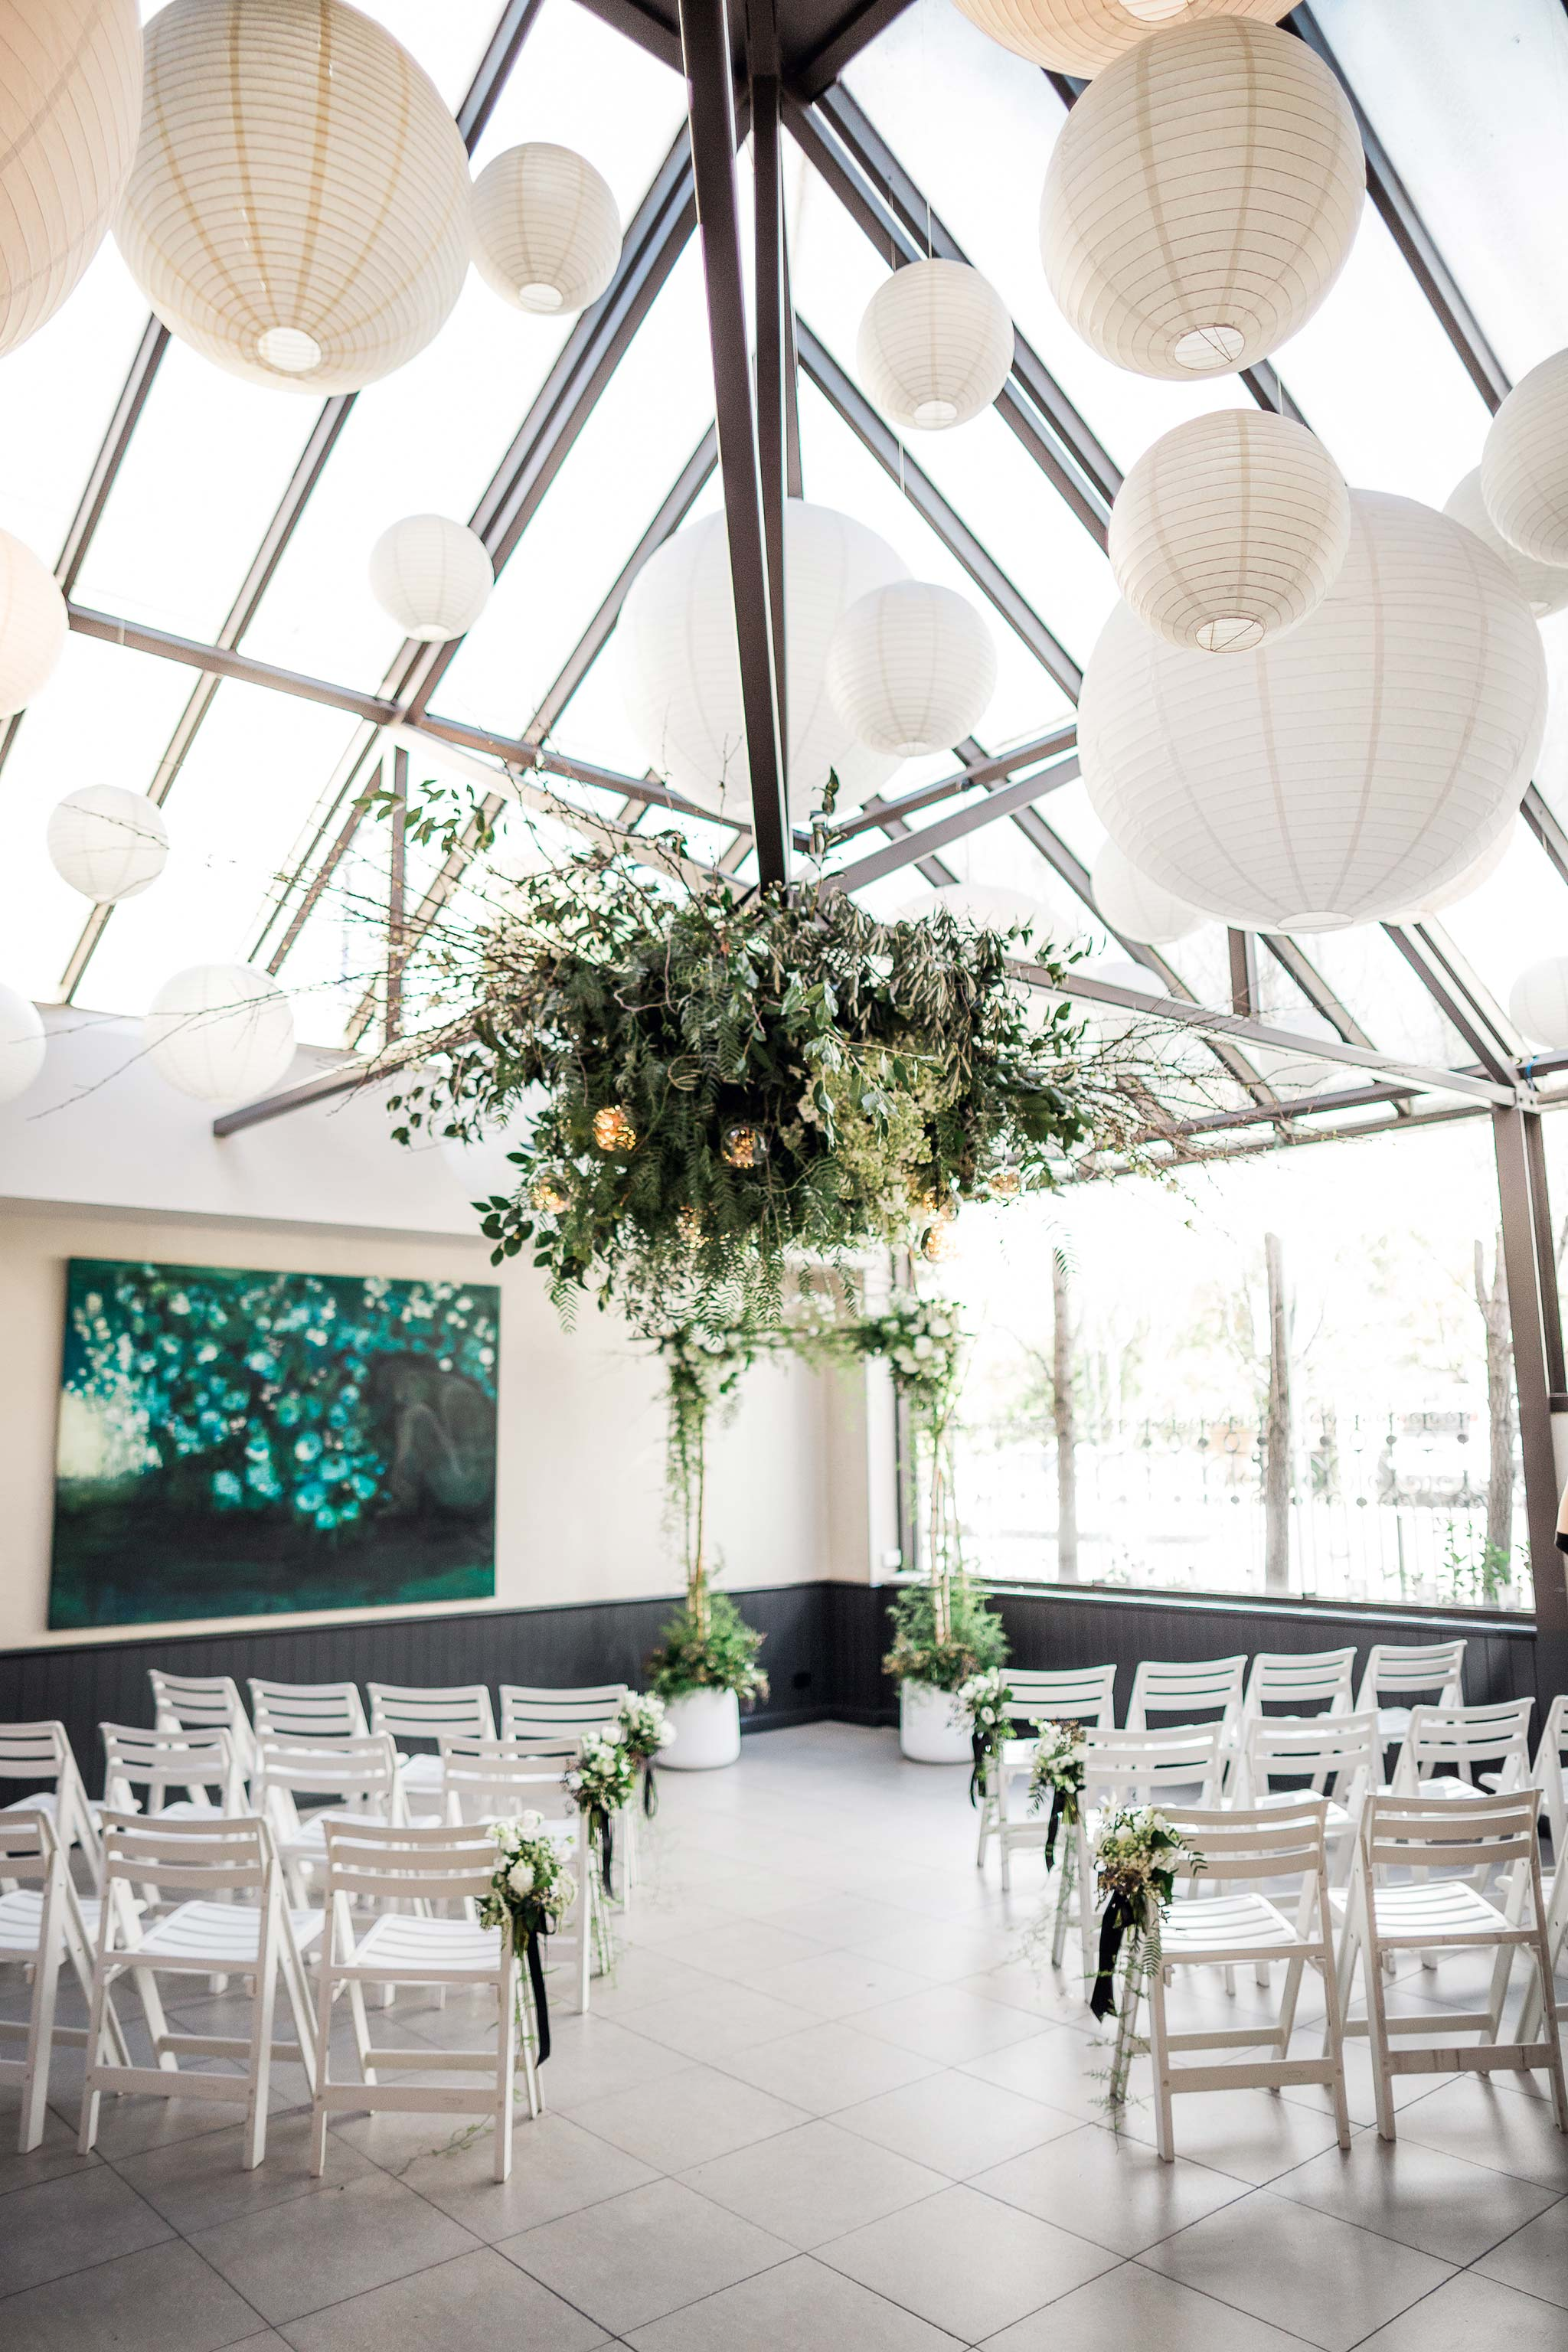 melbourne-fitzroy-st-andrews-conservatory-pumphouse-wedding-venue-ceremony-decoration